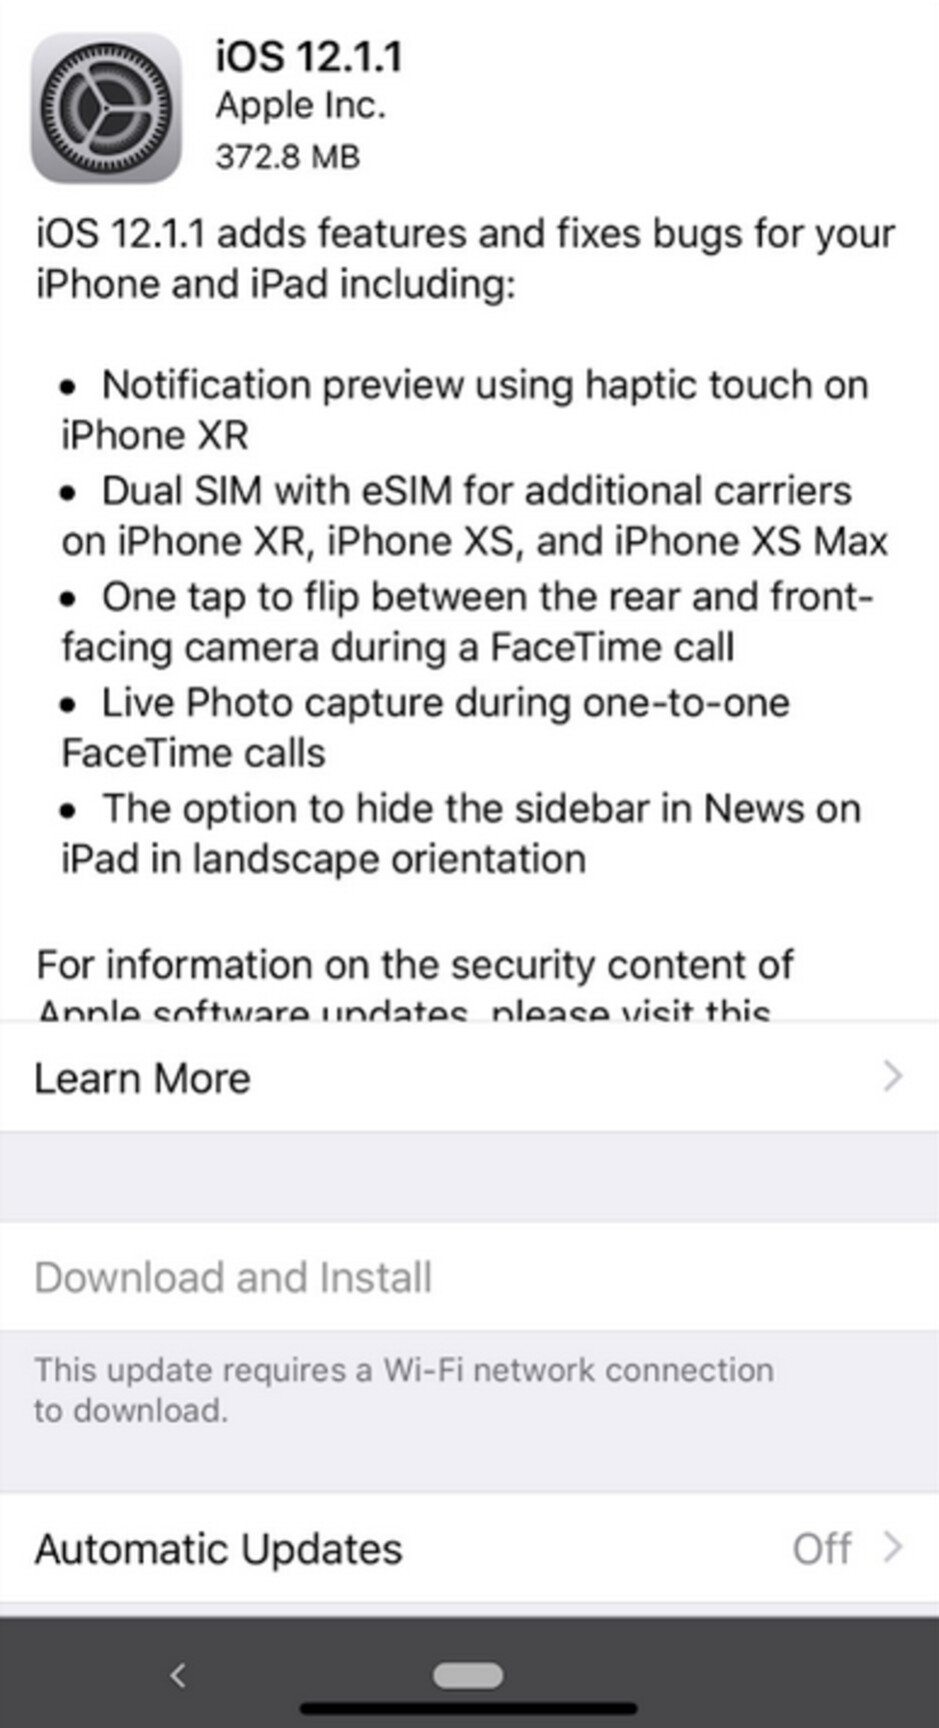 Apple releases iOS 12.1.1 - Apple releases iOS 12.1.1, allowing users to flip the FaceTime camera with a single tap